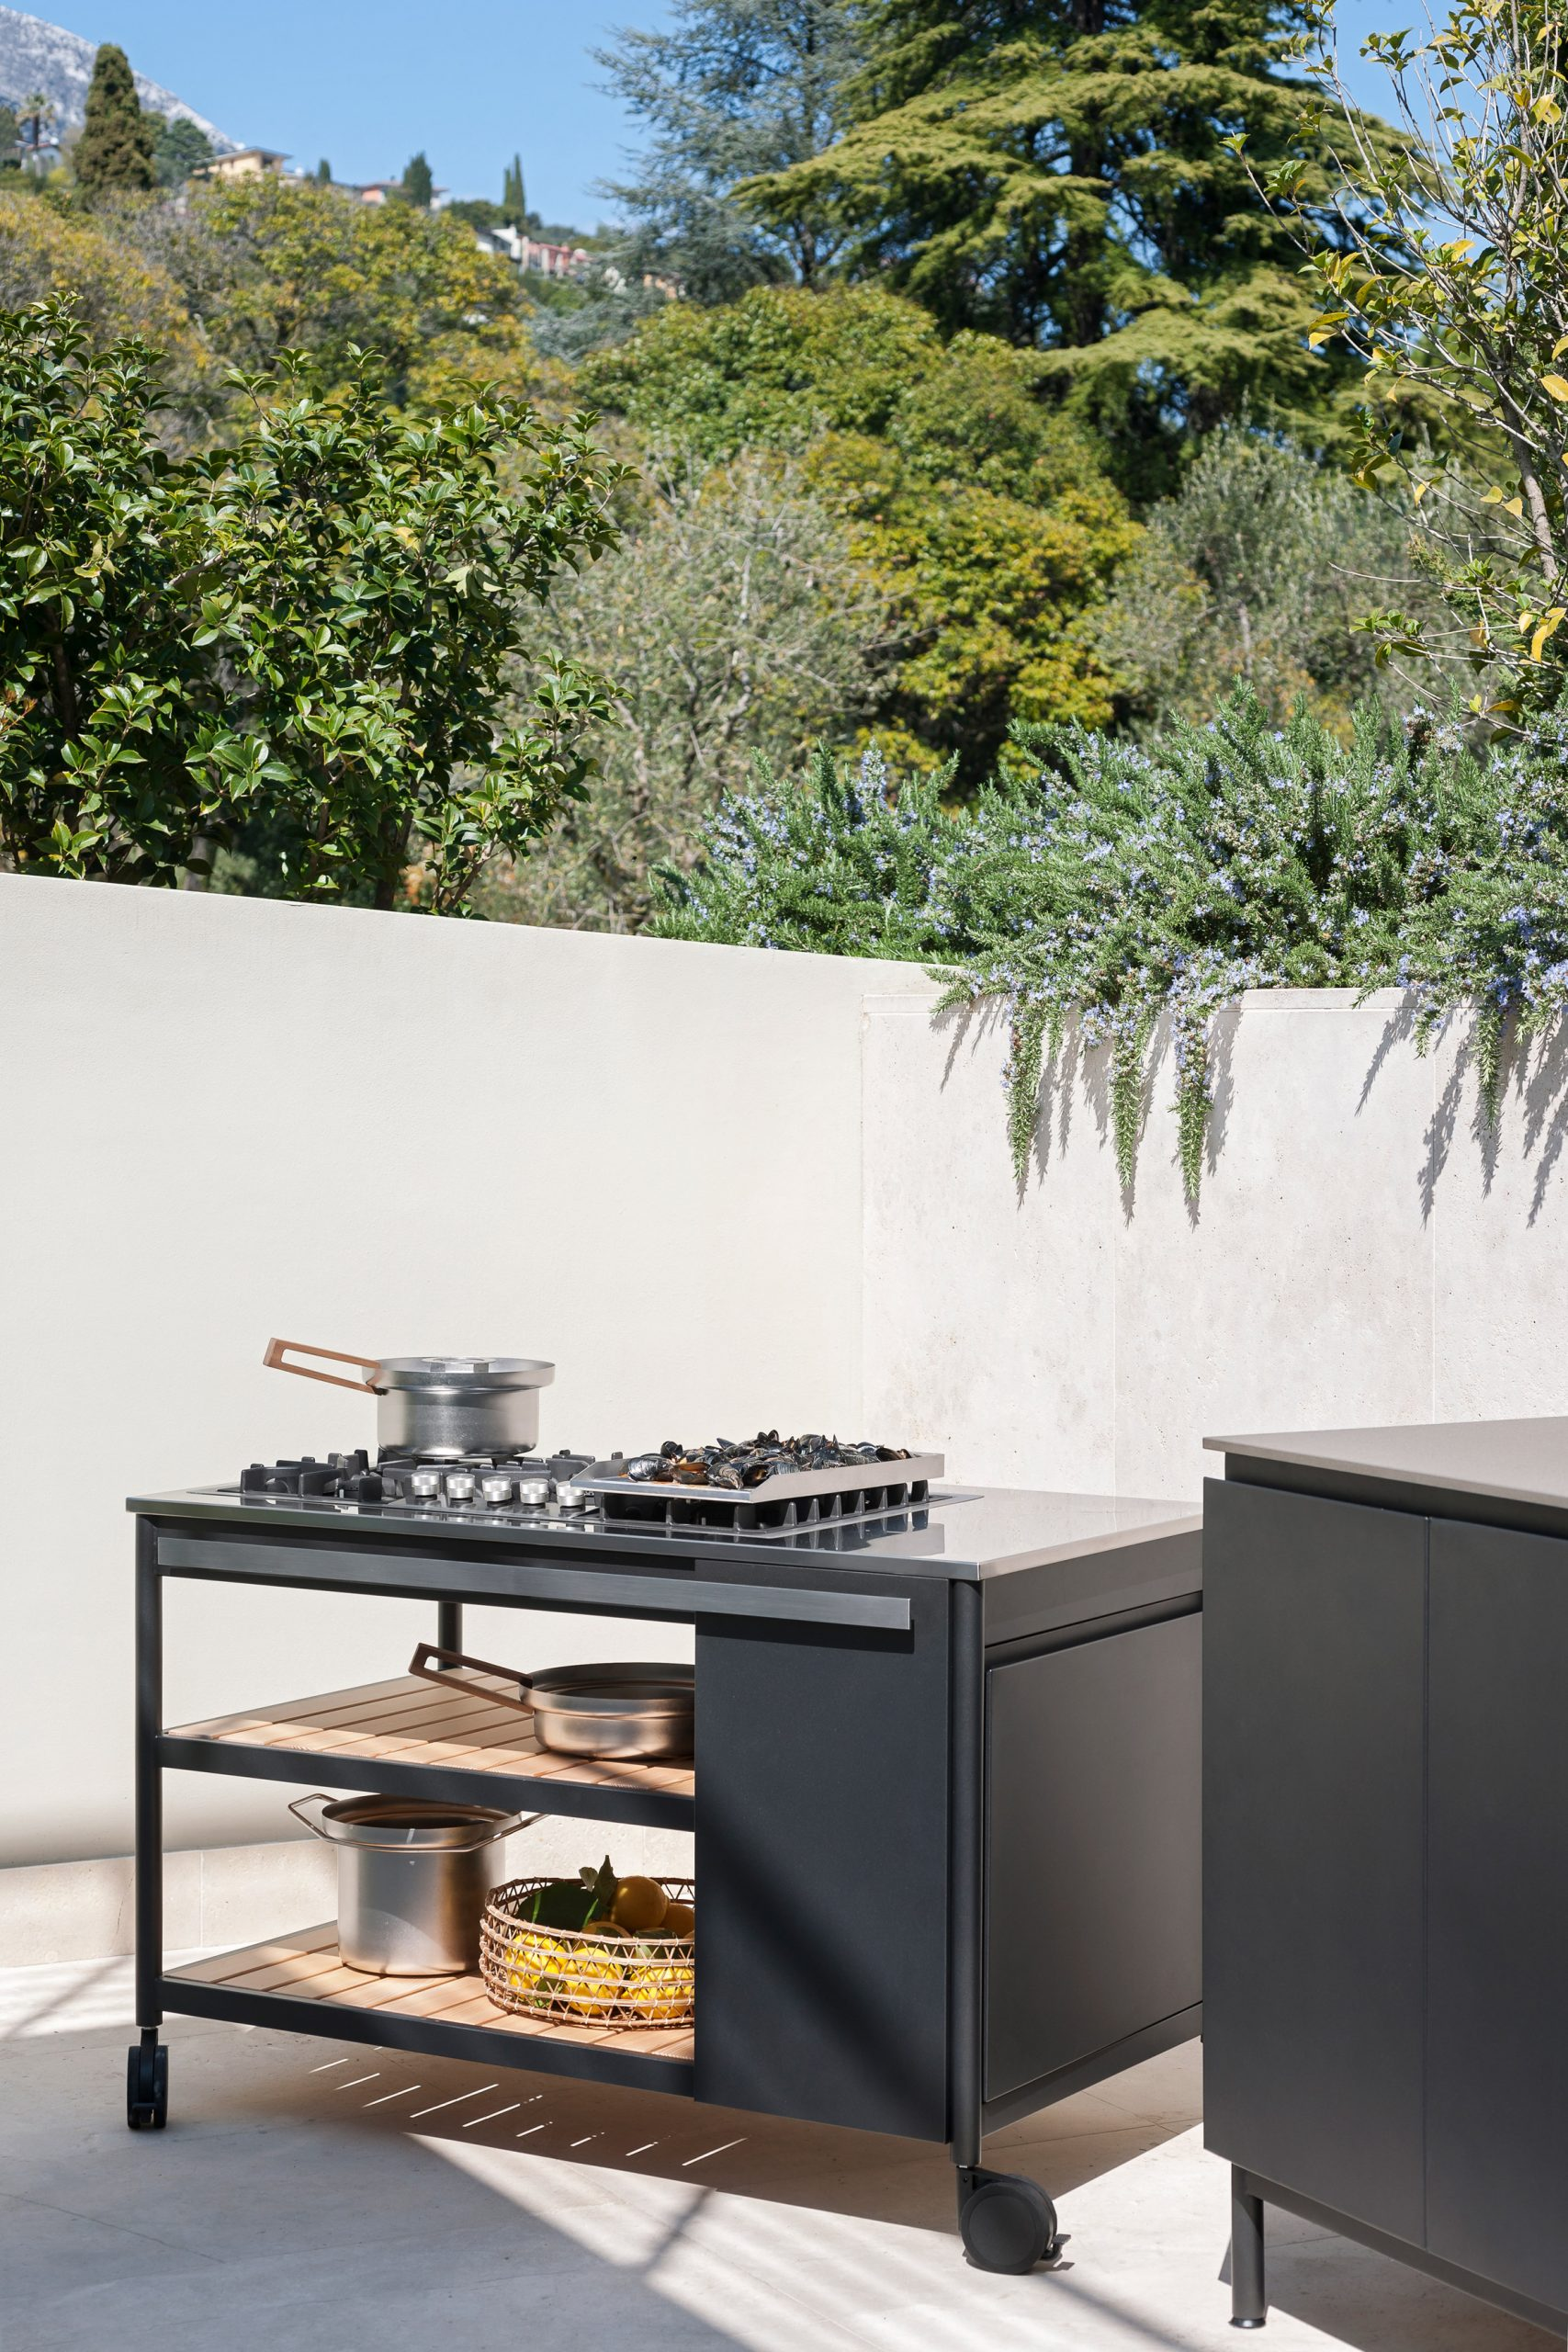 Outdoor cooking module by Roda with a five-top stove